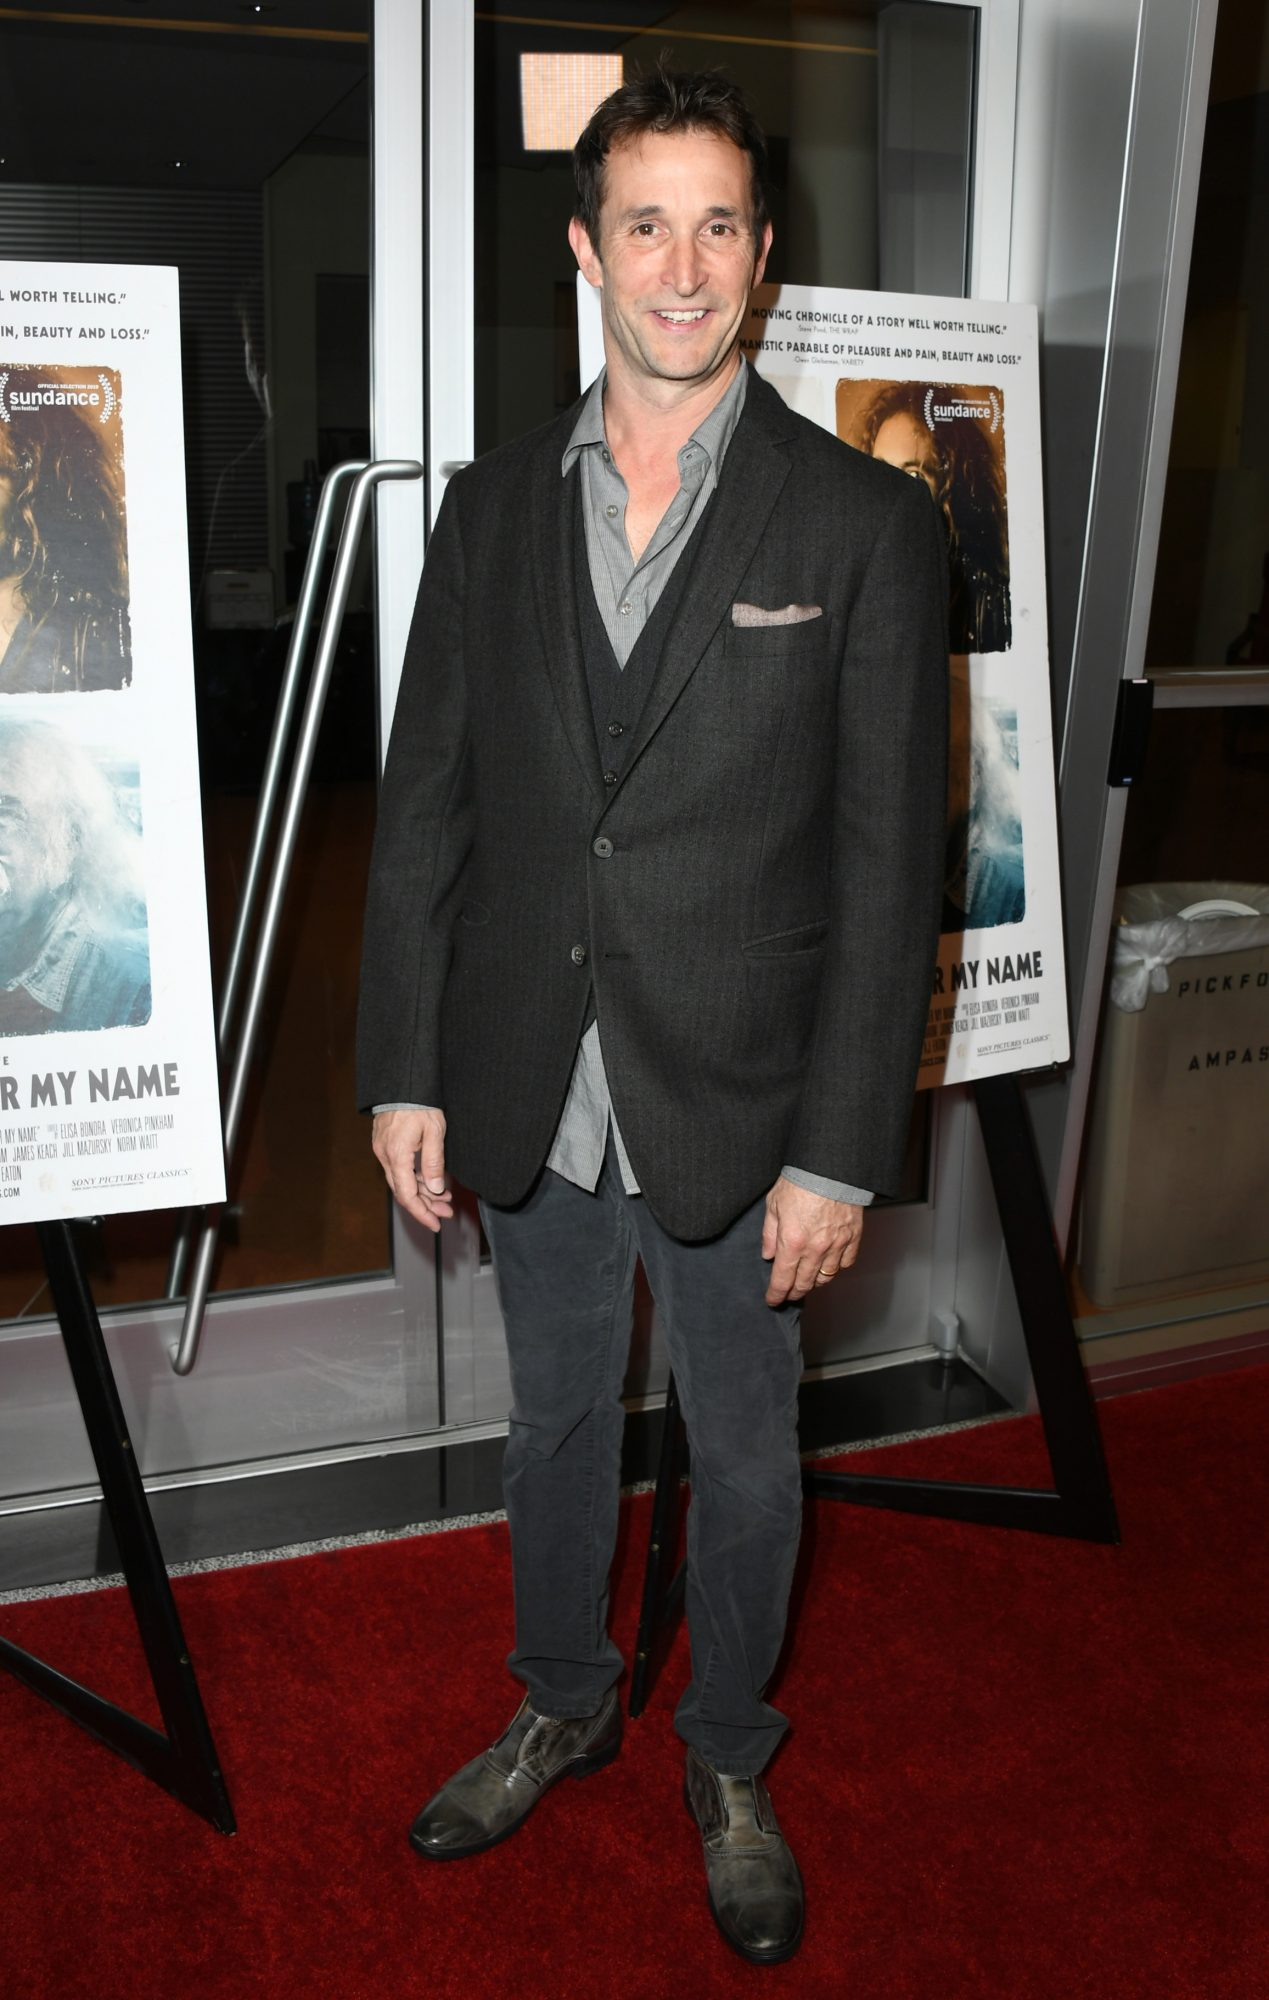 """LOS ANGELES, CALIFORNIA - JULY 18:  Noah Wyle attends the Premiere Of Sony Pictures Classic's """"David Crosby: Remember My Name"""" at Linwood Dunn Theater on July 18, 2019 in Los Angeles, California. (Photo by Jon Kopaloff/Getty Images)"""